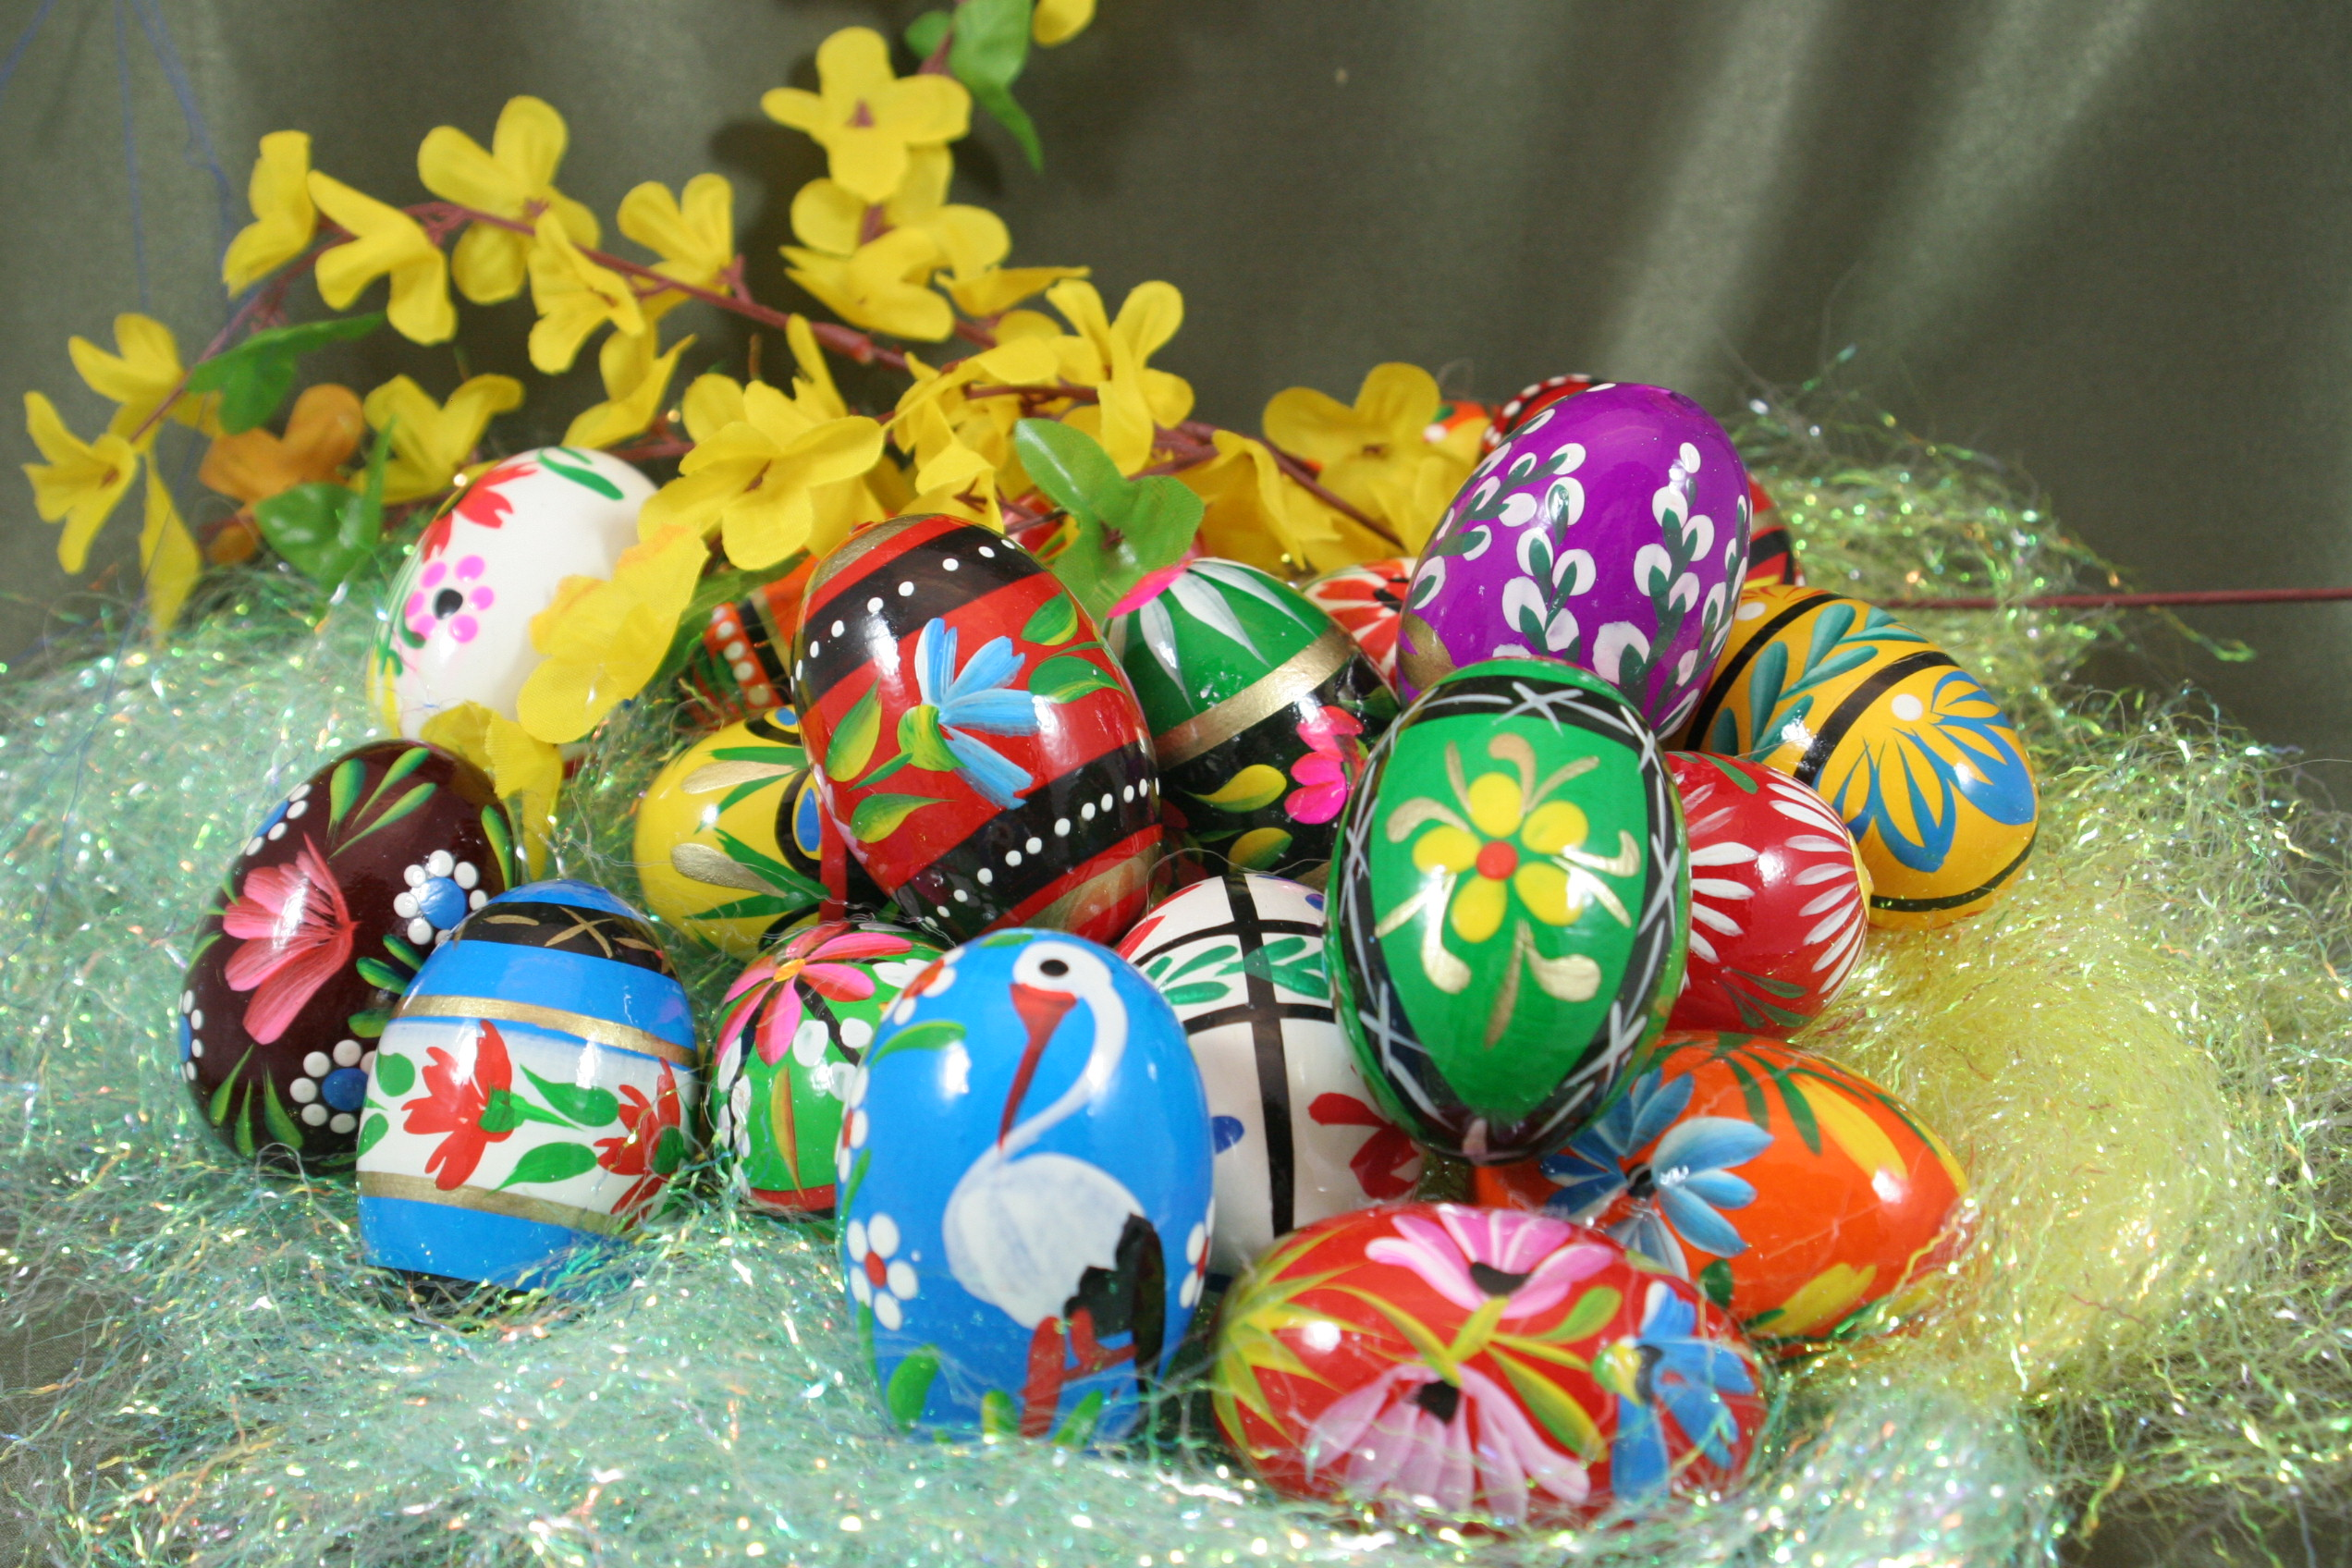 Wooden Easter Eggs from Poland